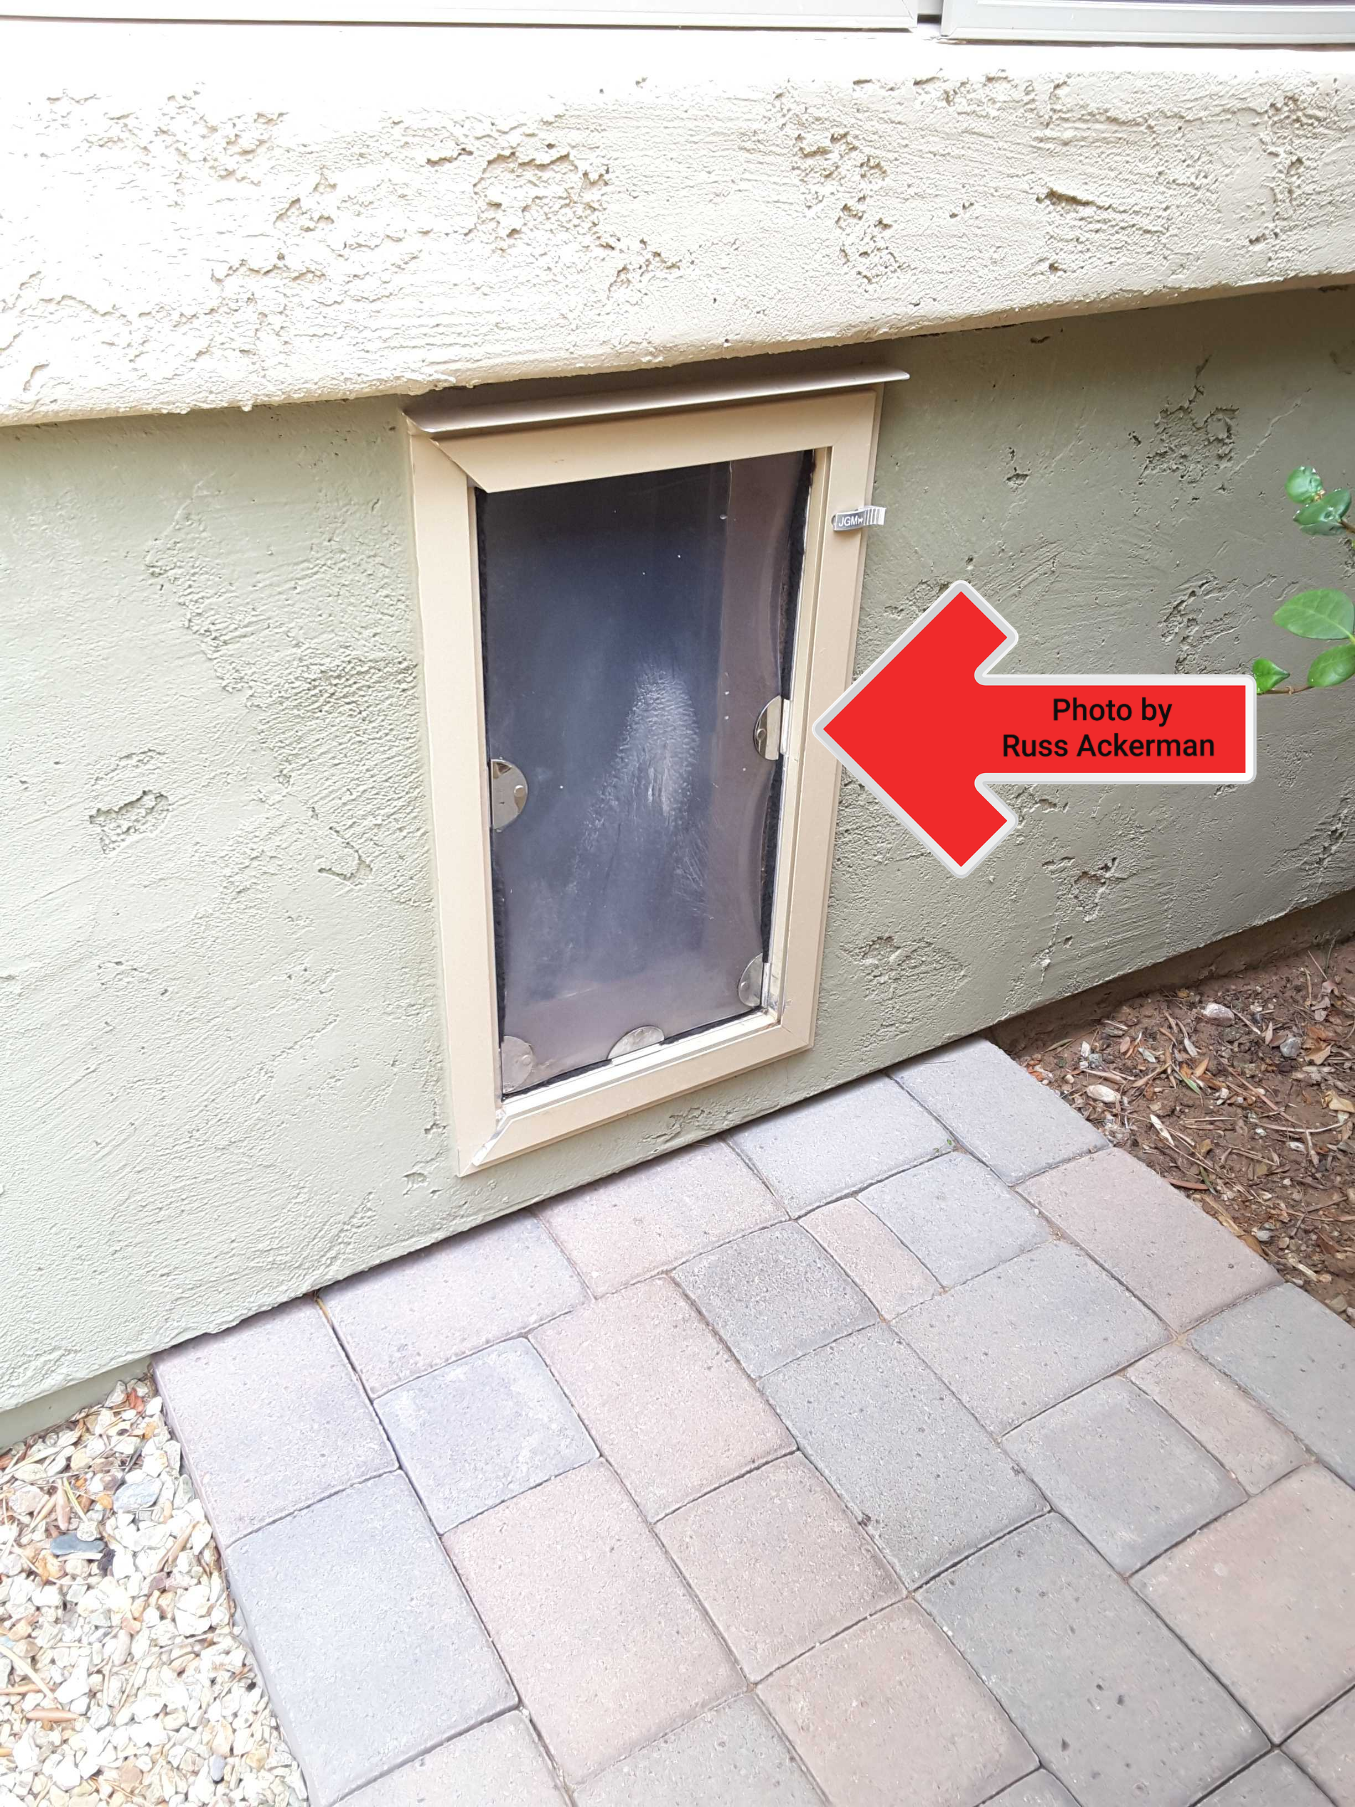 A pet door leading to a pool area is a safety hazard. This is also a potential security issue as thieves often break into homes using a pet door.